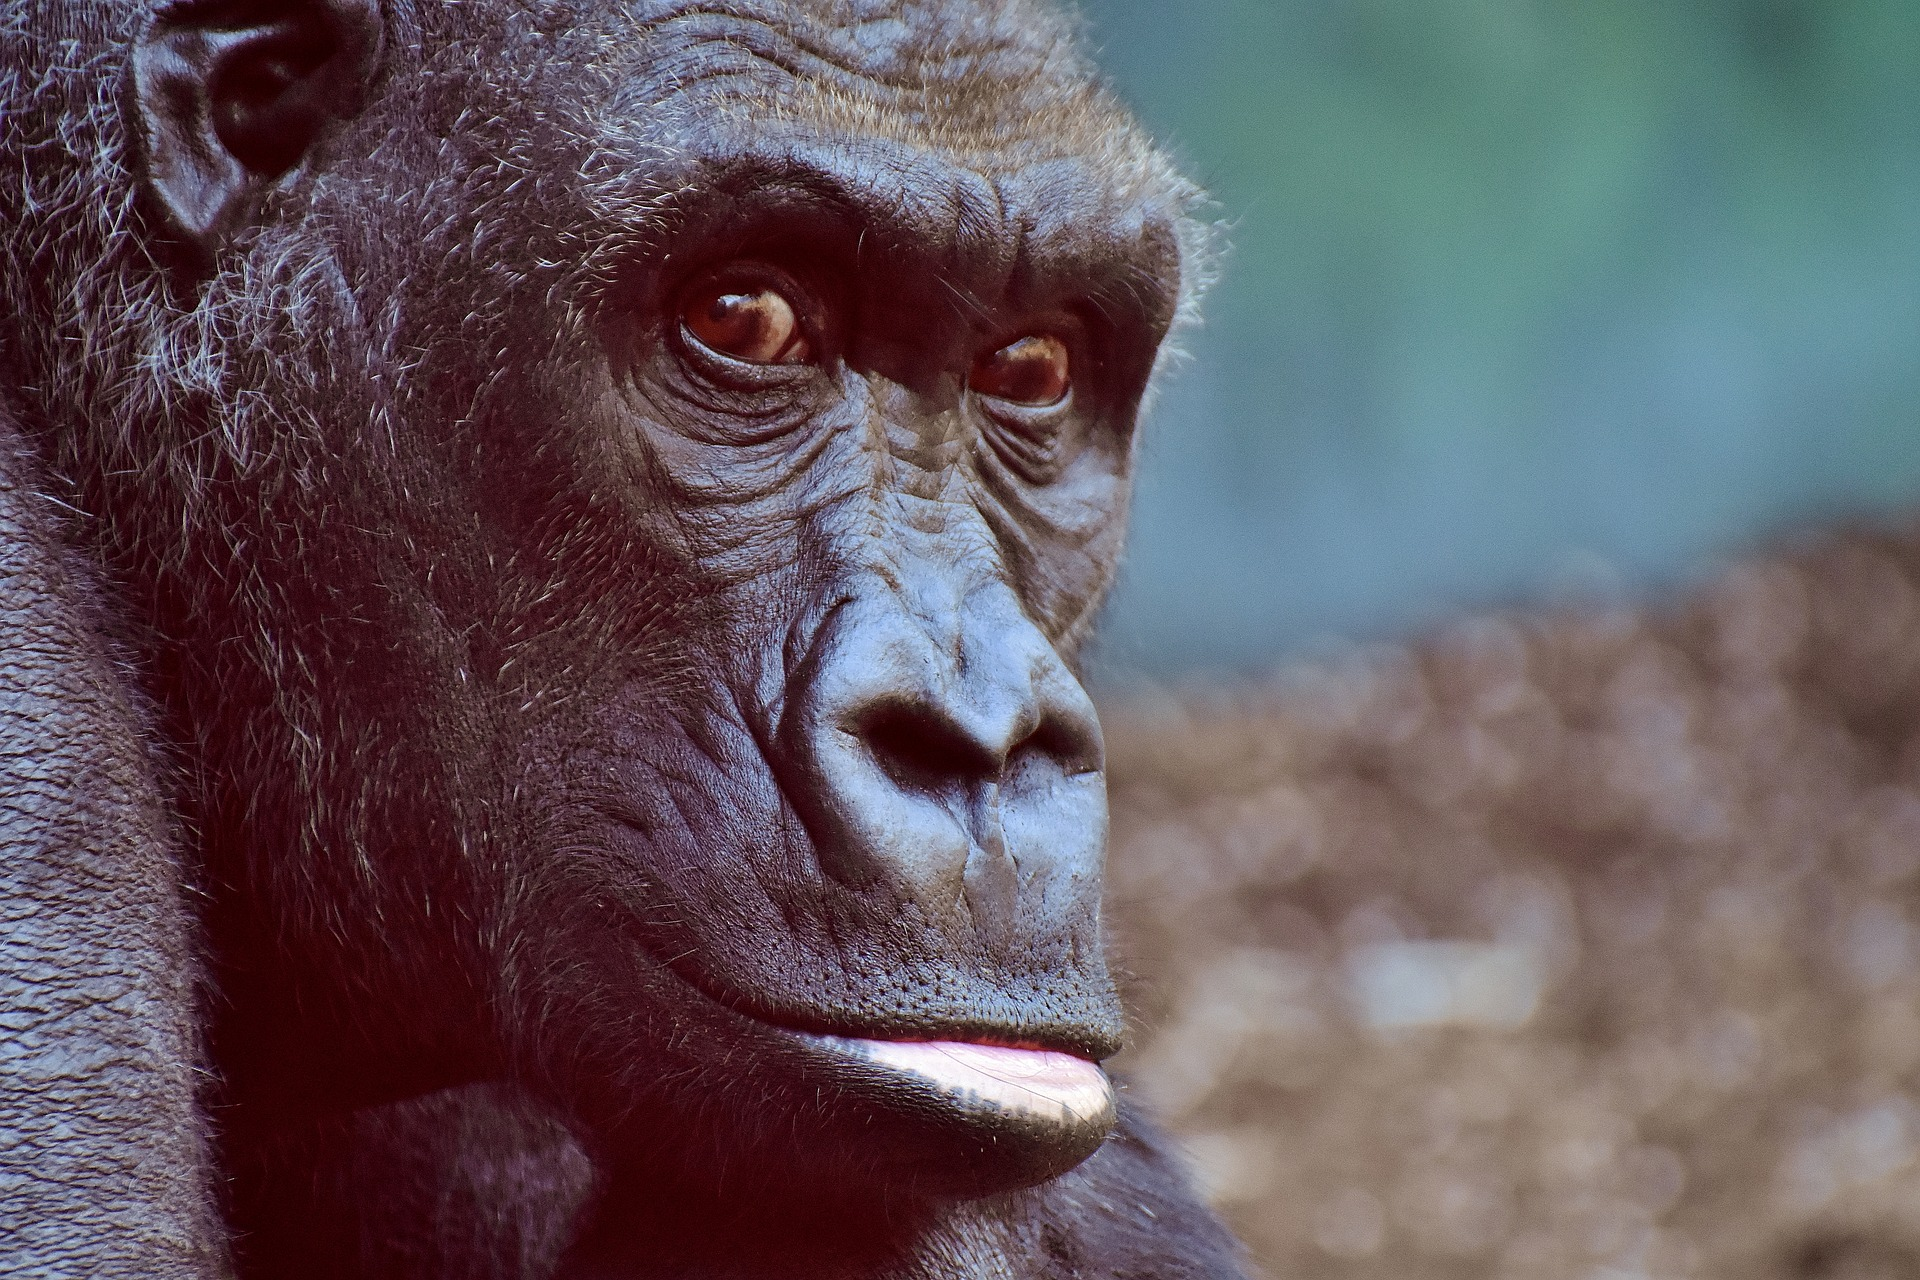 gorilla https://pixabay.com/it/gorilla-scimmia-animale-peloso-2876059/ © Alexas_Fotos CCO